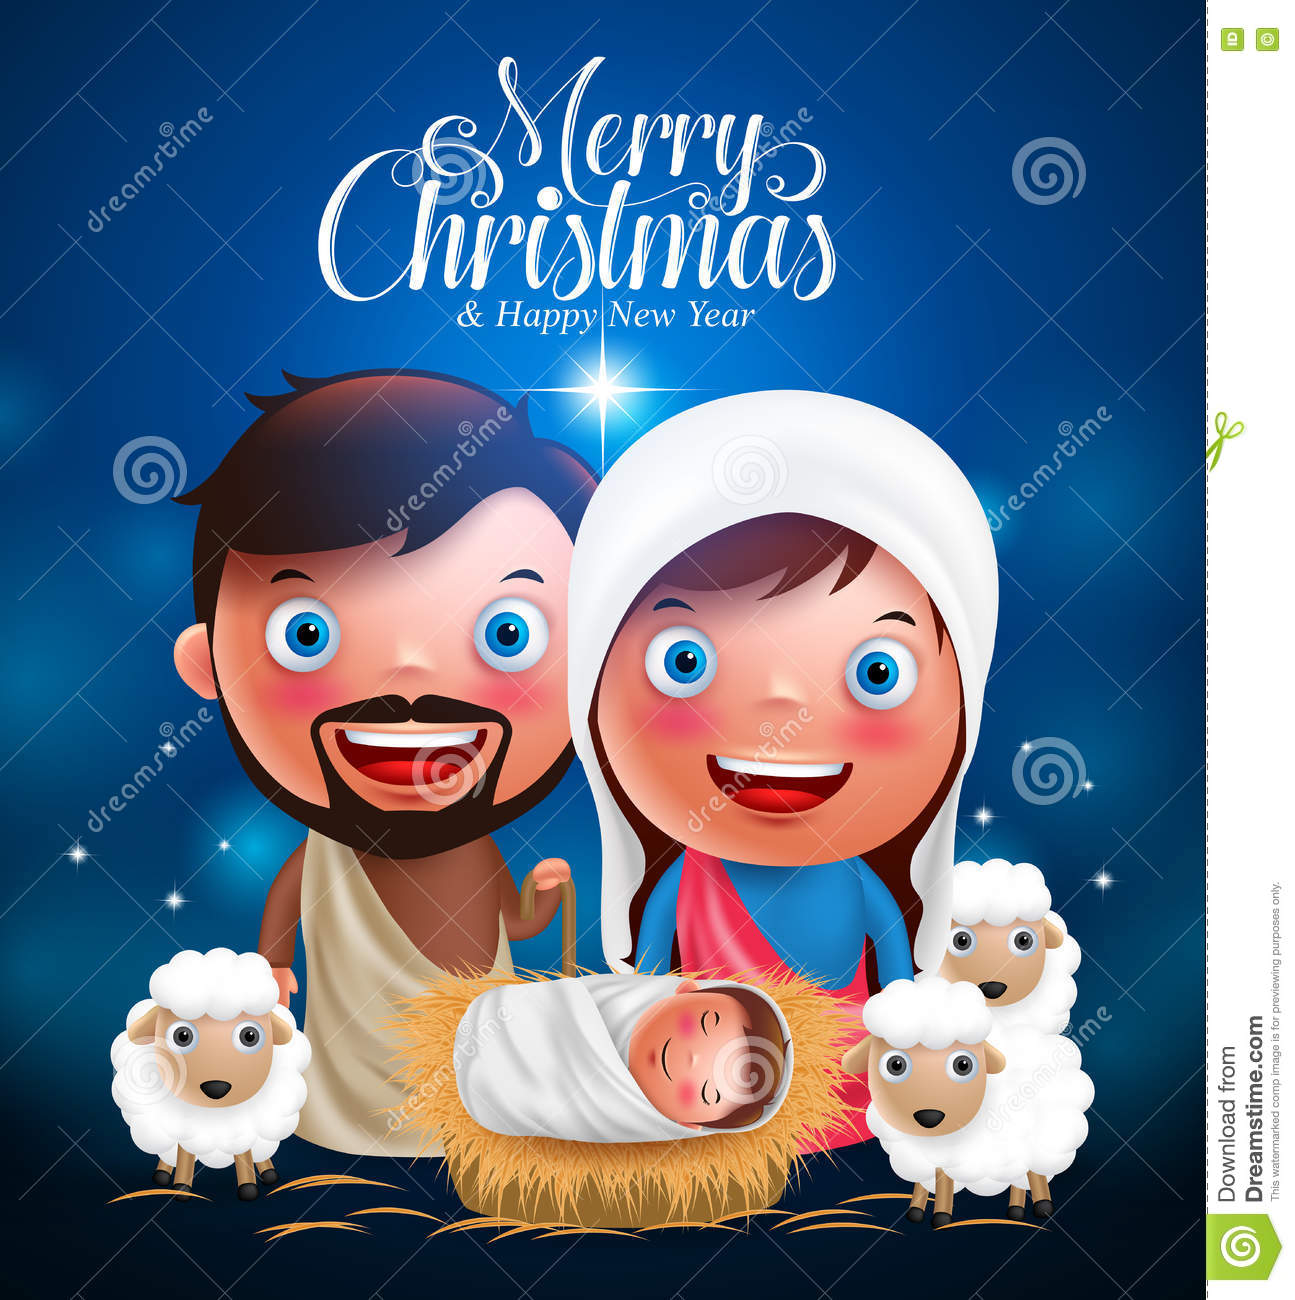 Merry Christmas Greetings With Jesus Born In Manger, Belen With ...